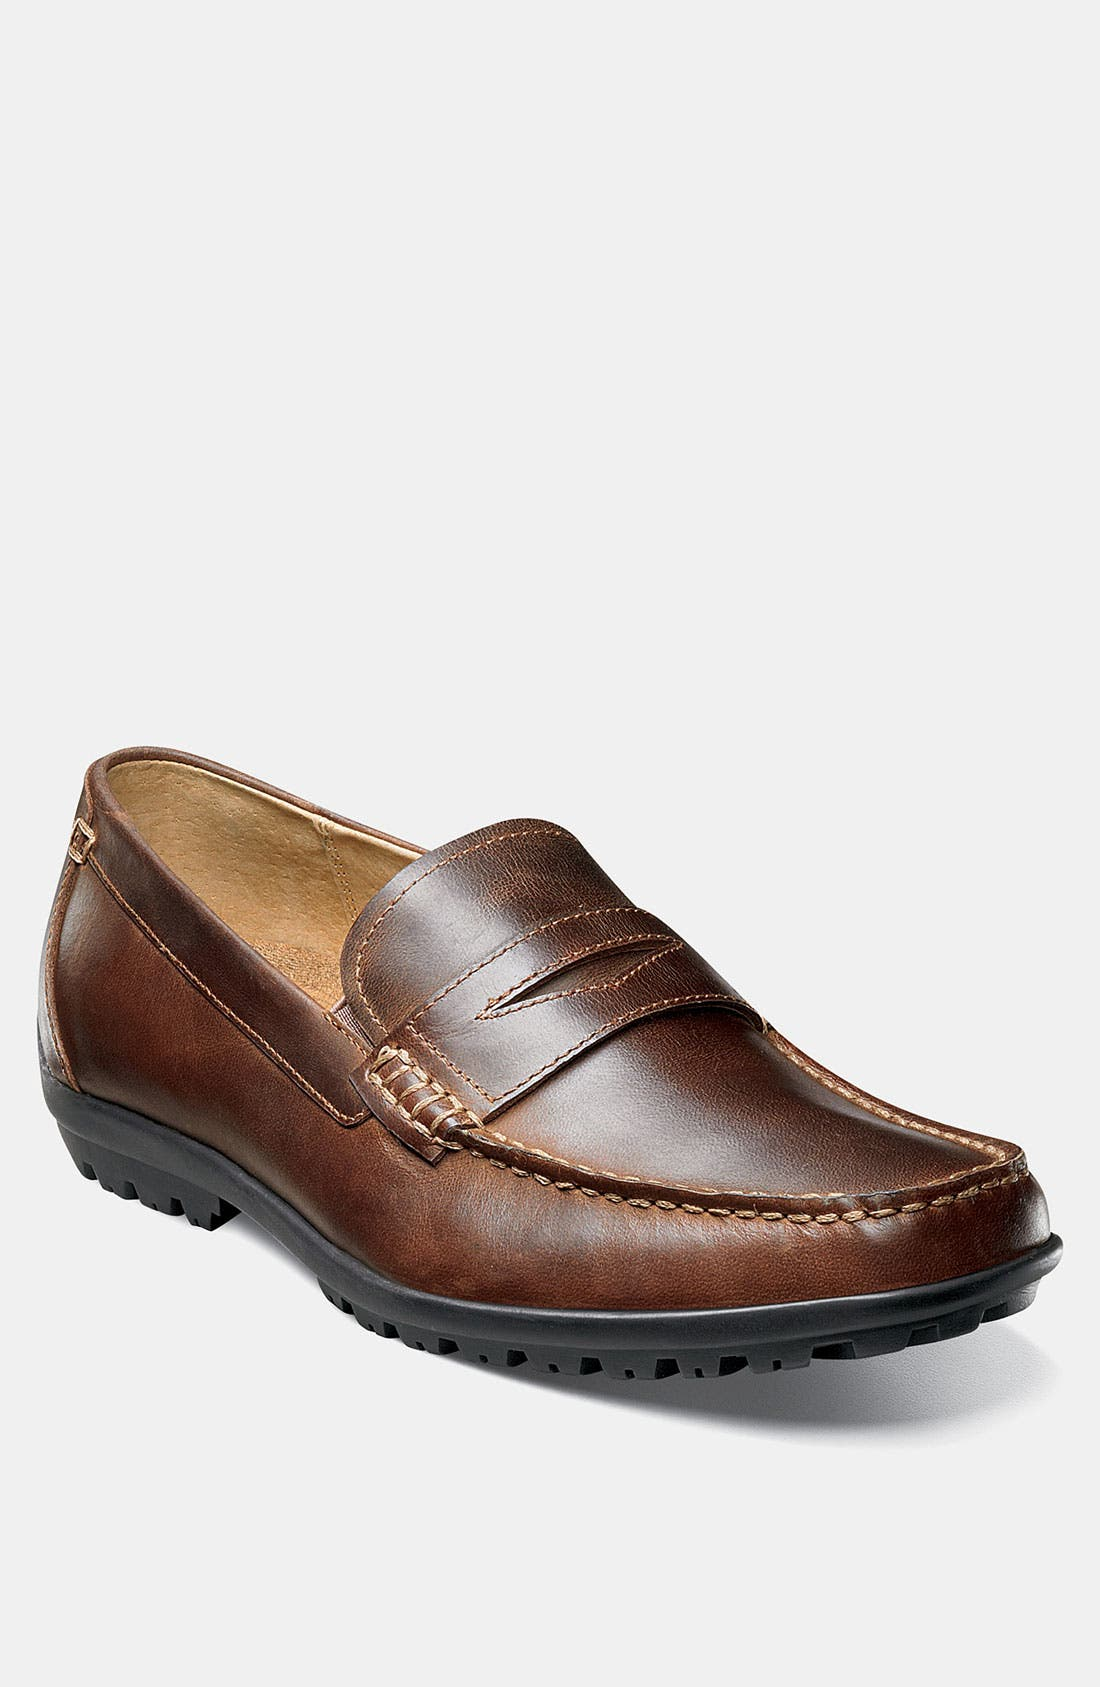 Main Image - Florsheim 'Nowles' Penny Loafer